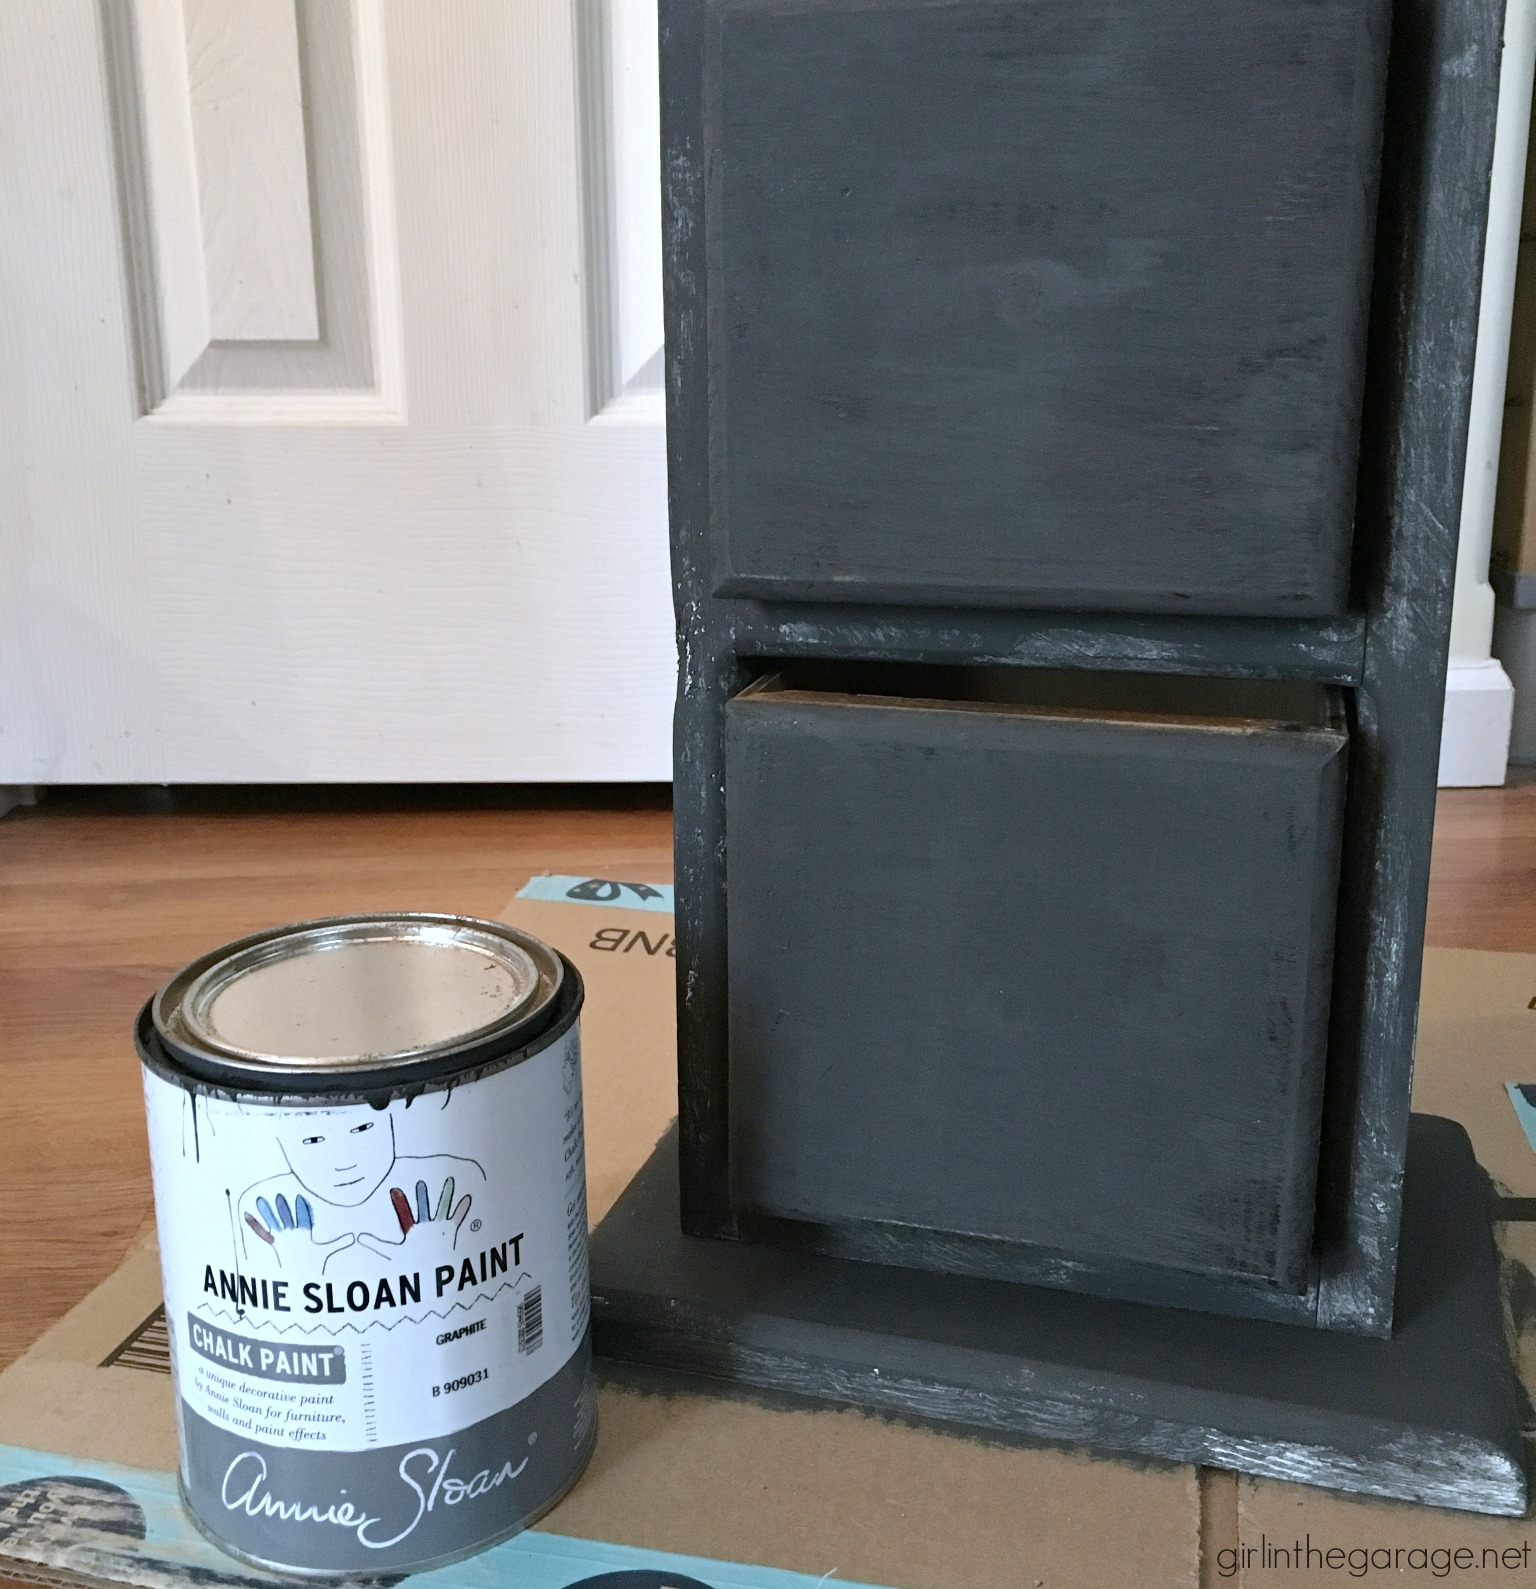 If you want the stained look, but can't have it. Learn how to paint furniture to look like stain. Plus: A card catalog makeover with this faux stain finish! By Girl in the Garage